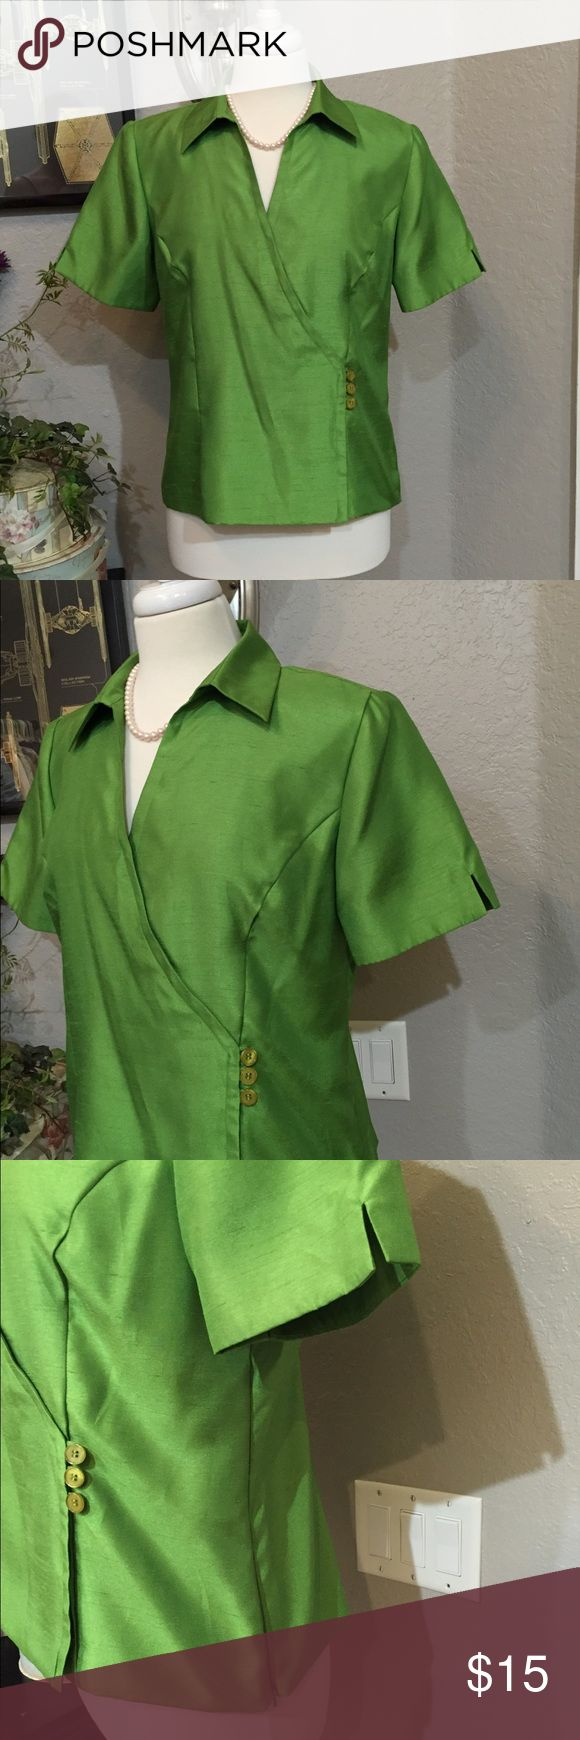 Sag Harbor Green Top Faux Jacket Size 10  100% polyester, fabric has kind of a shine to it. Jacket has a side zipper and buttons are for decoration. Like new condition. Sag Harbor Tops